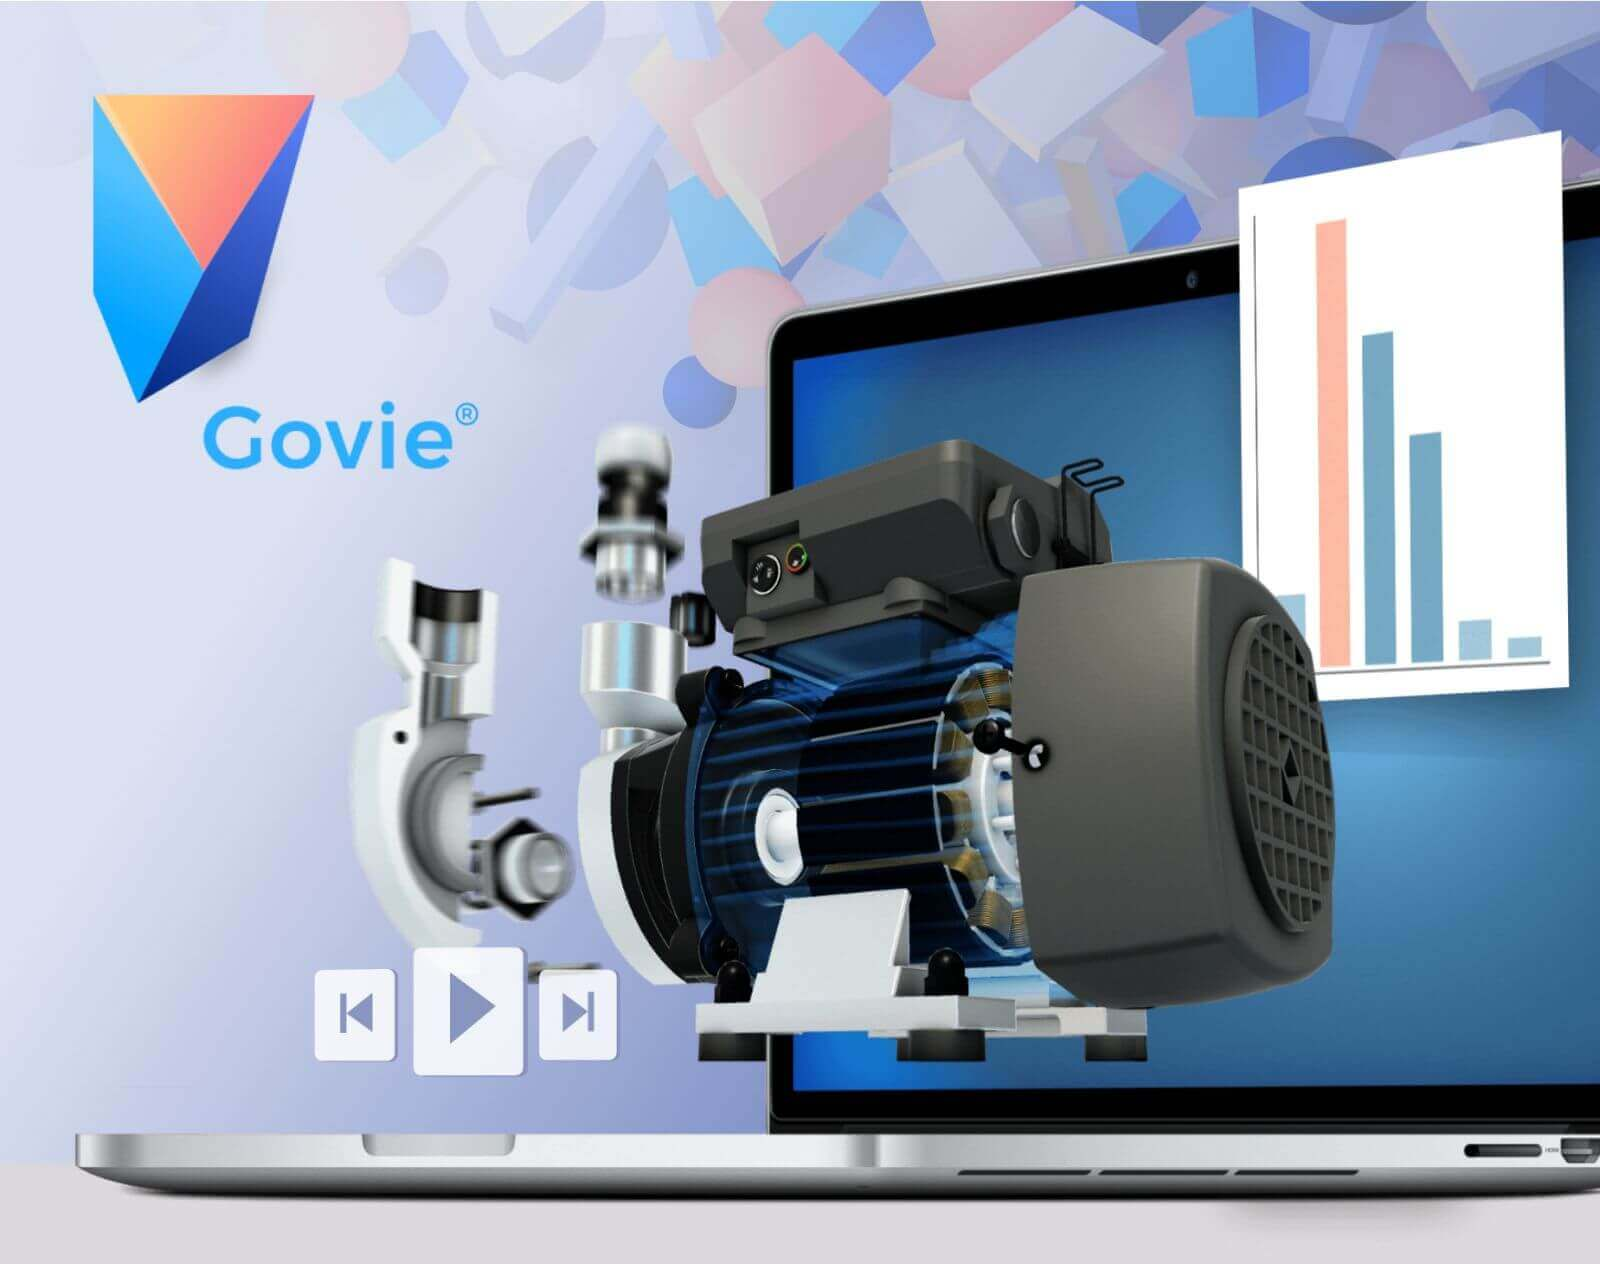 Govie product website